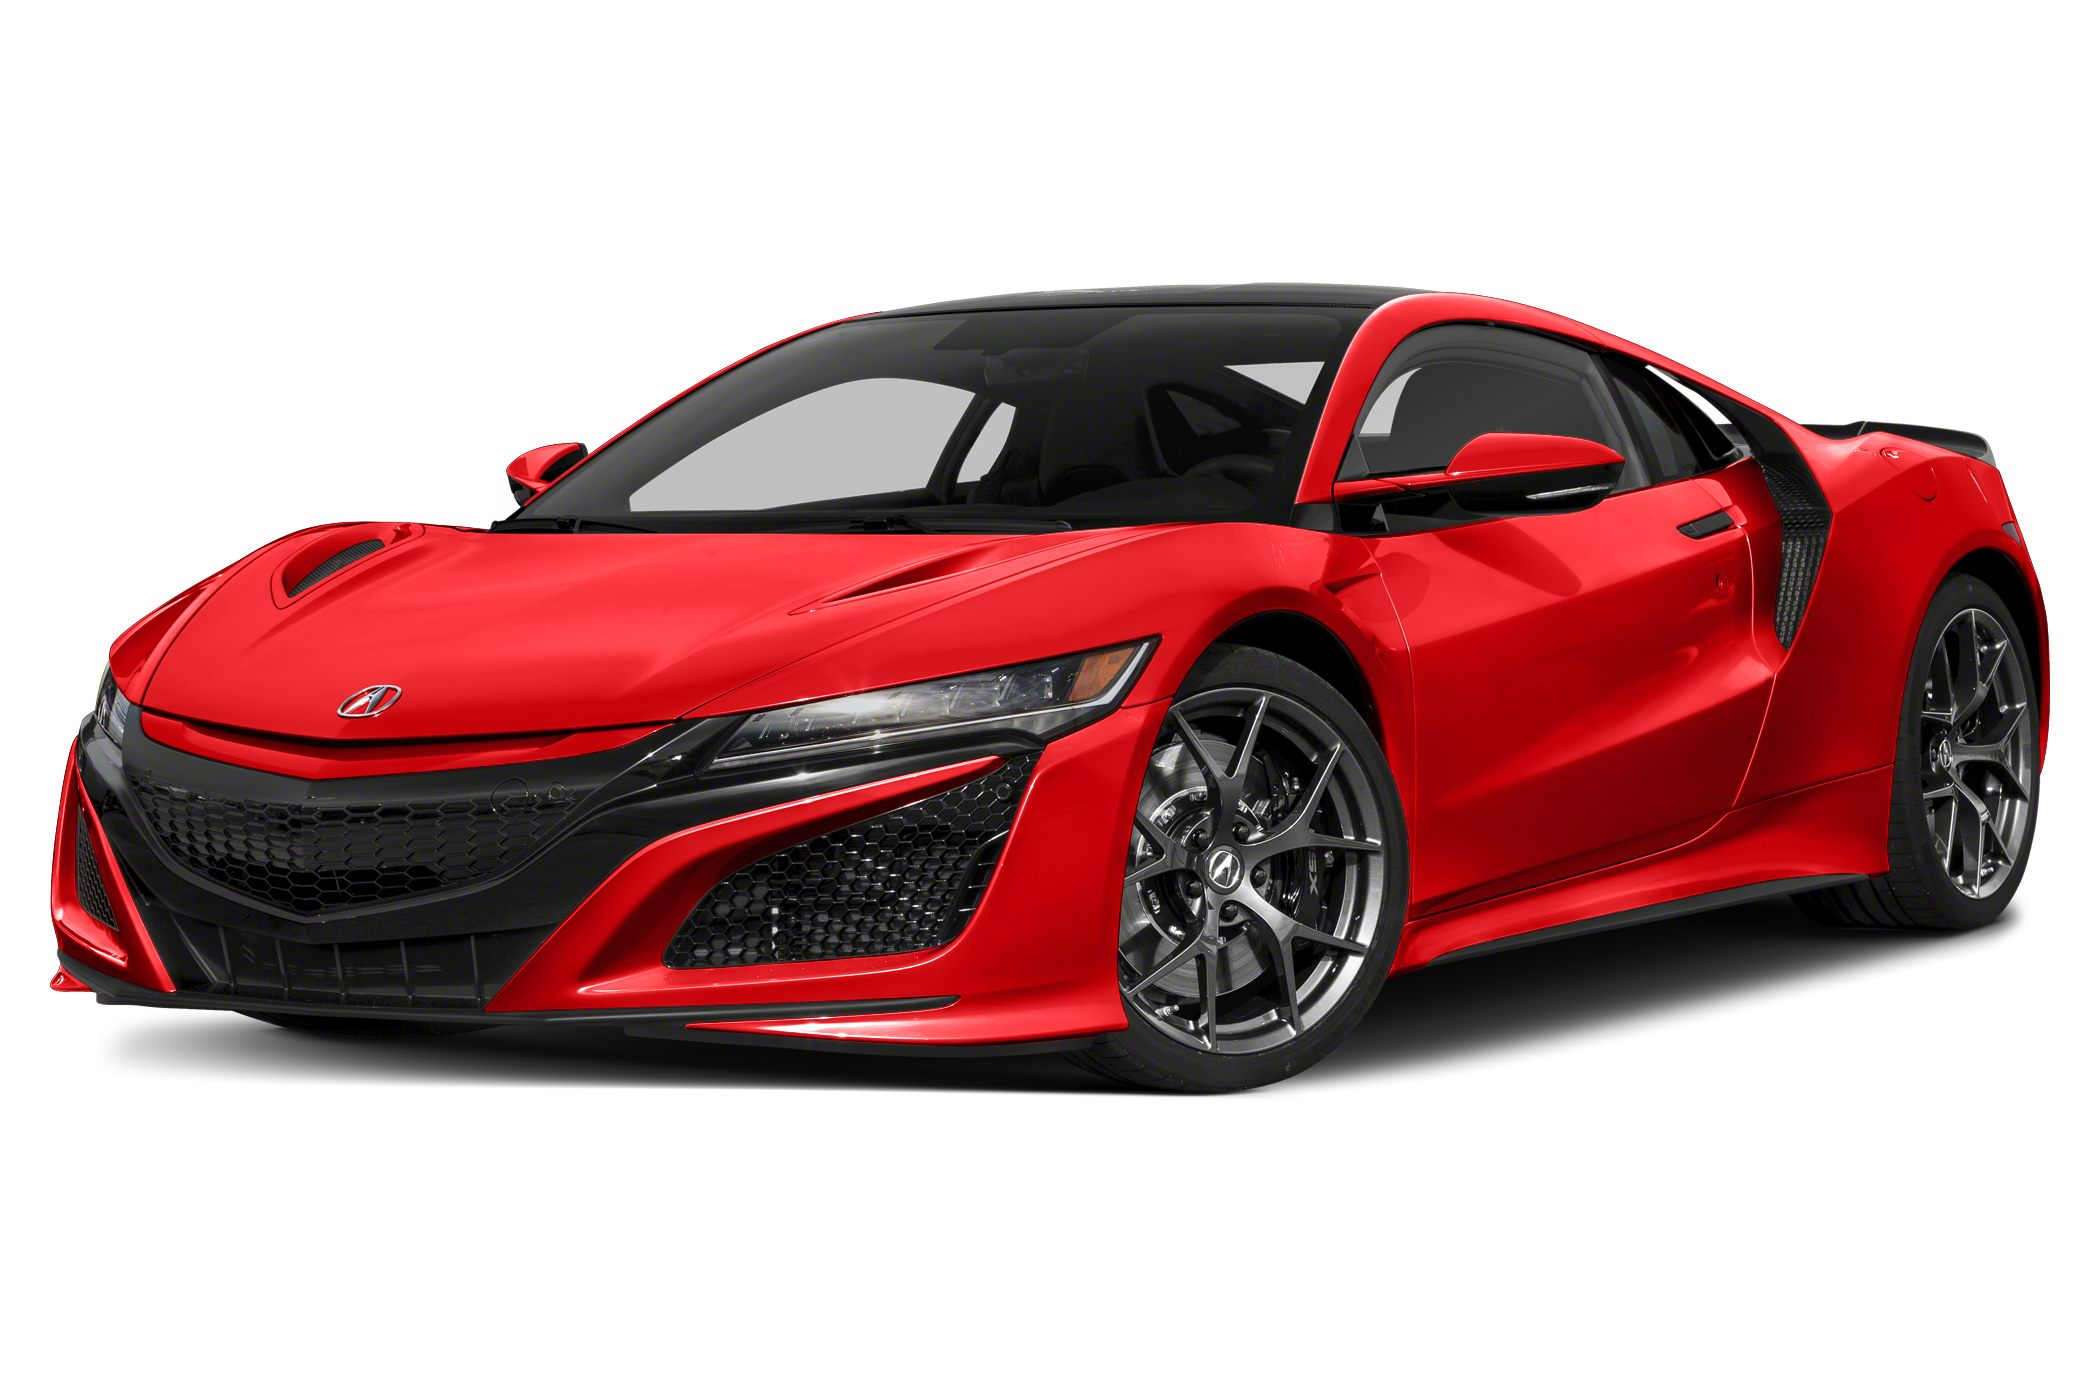 2020 Acura NSXs New Model and Performance